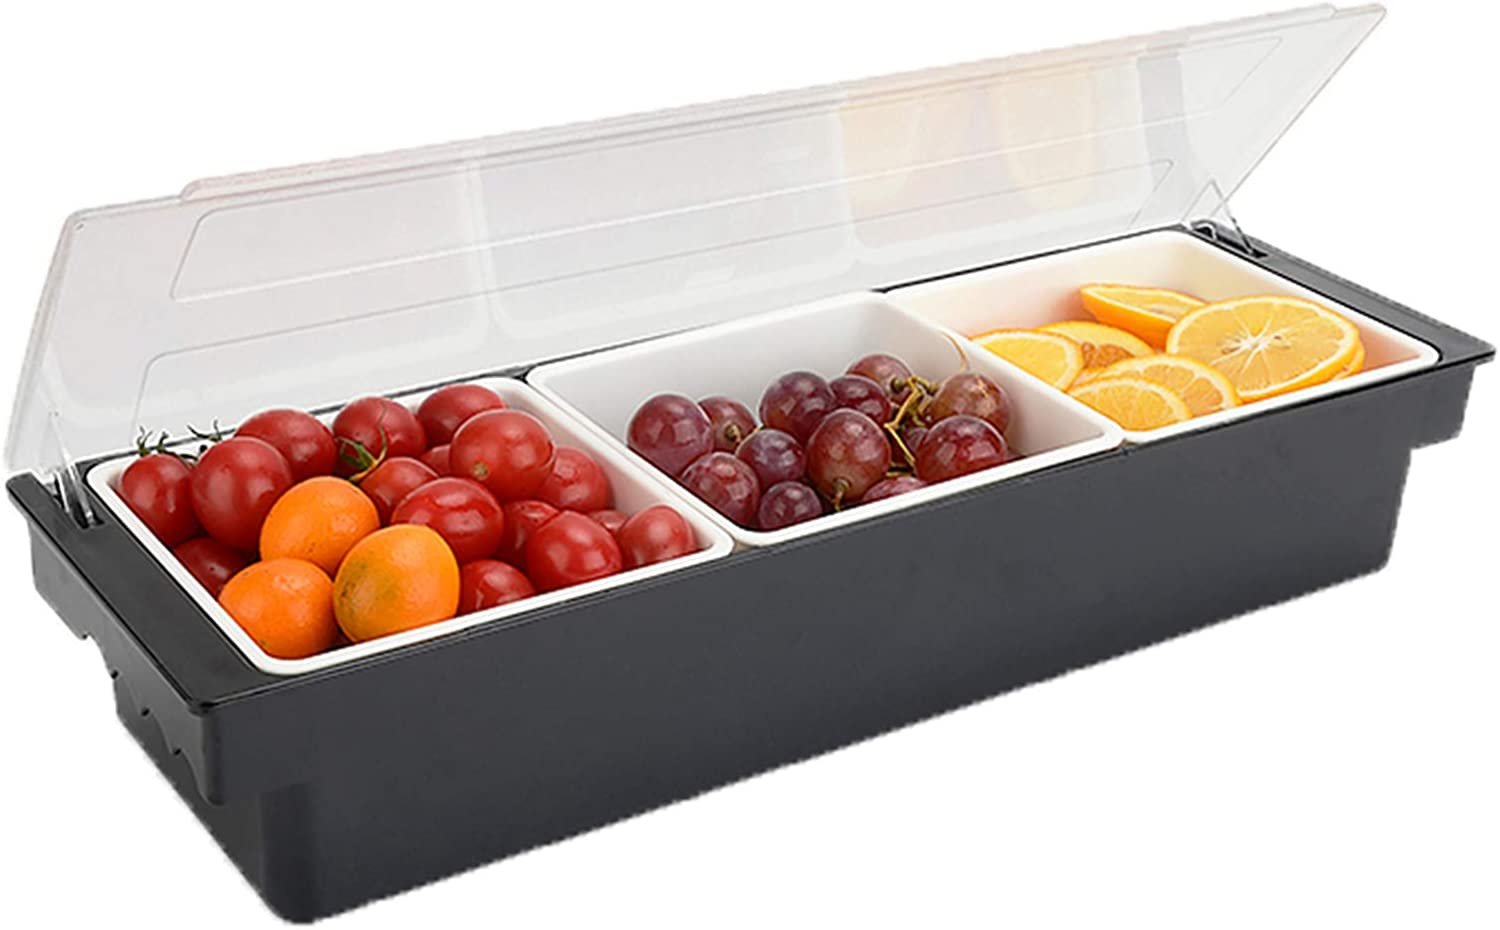 FEOOWV Fruit Veggie Condiment Caddy with Lid, 3 Compartment Plastic Dispenser Tray for Catering Dips Toppings, Garnish Organizer for Restaurant Supplies